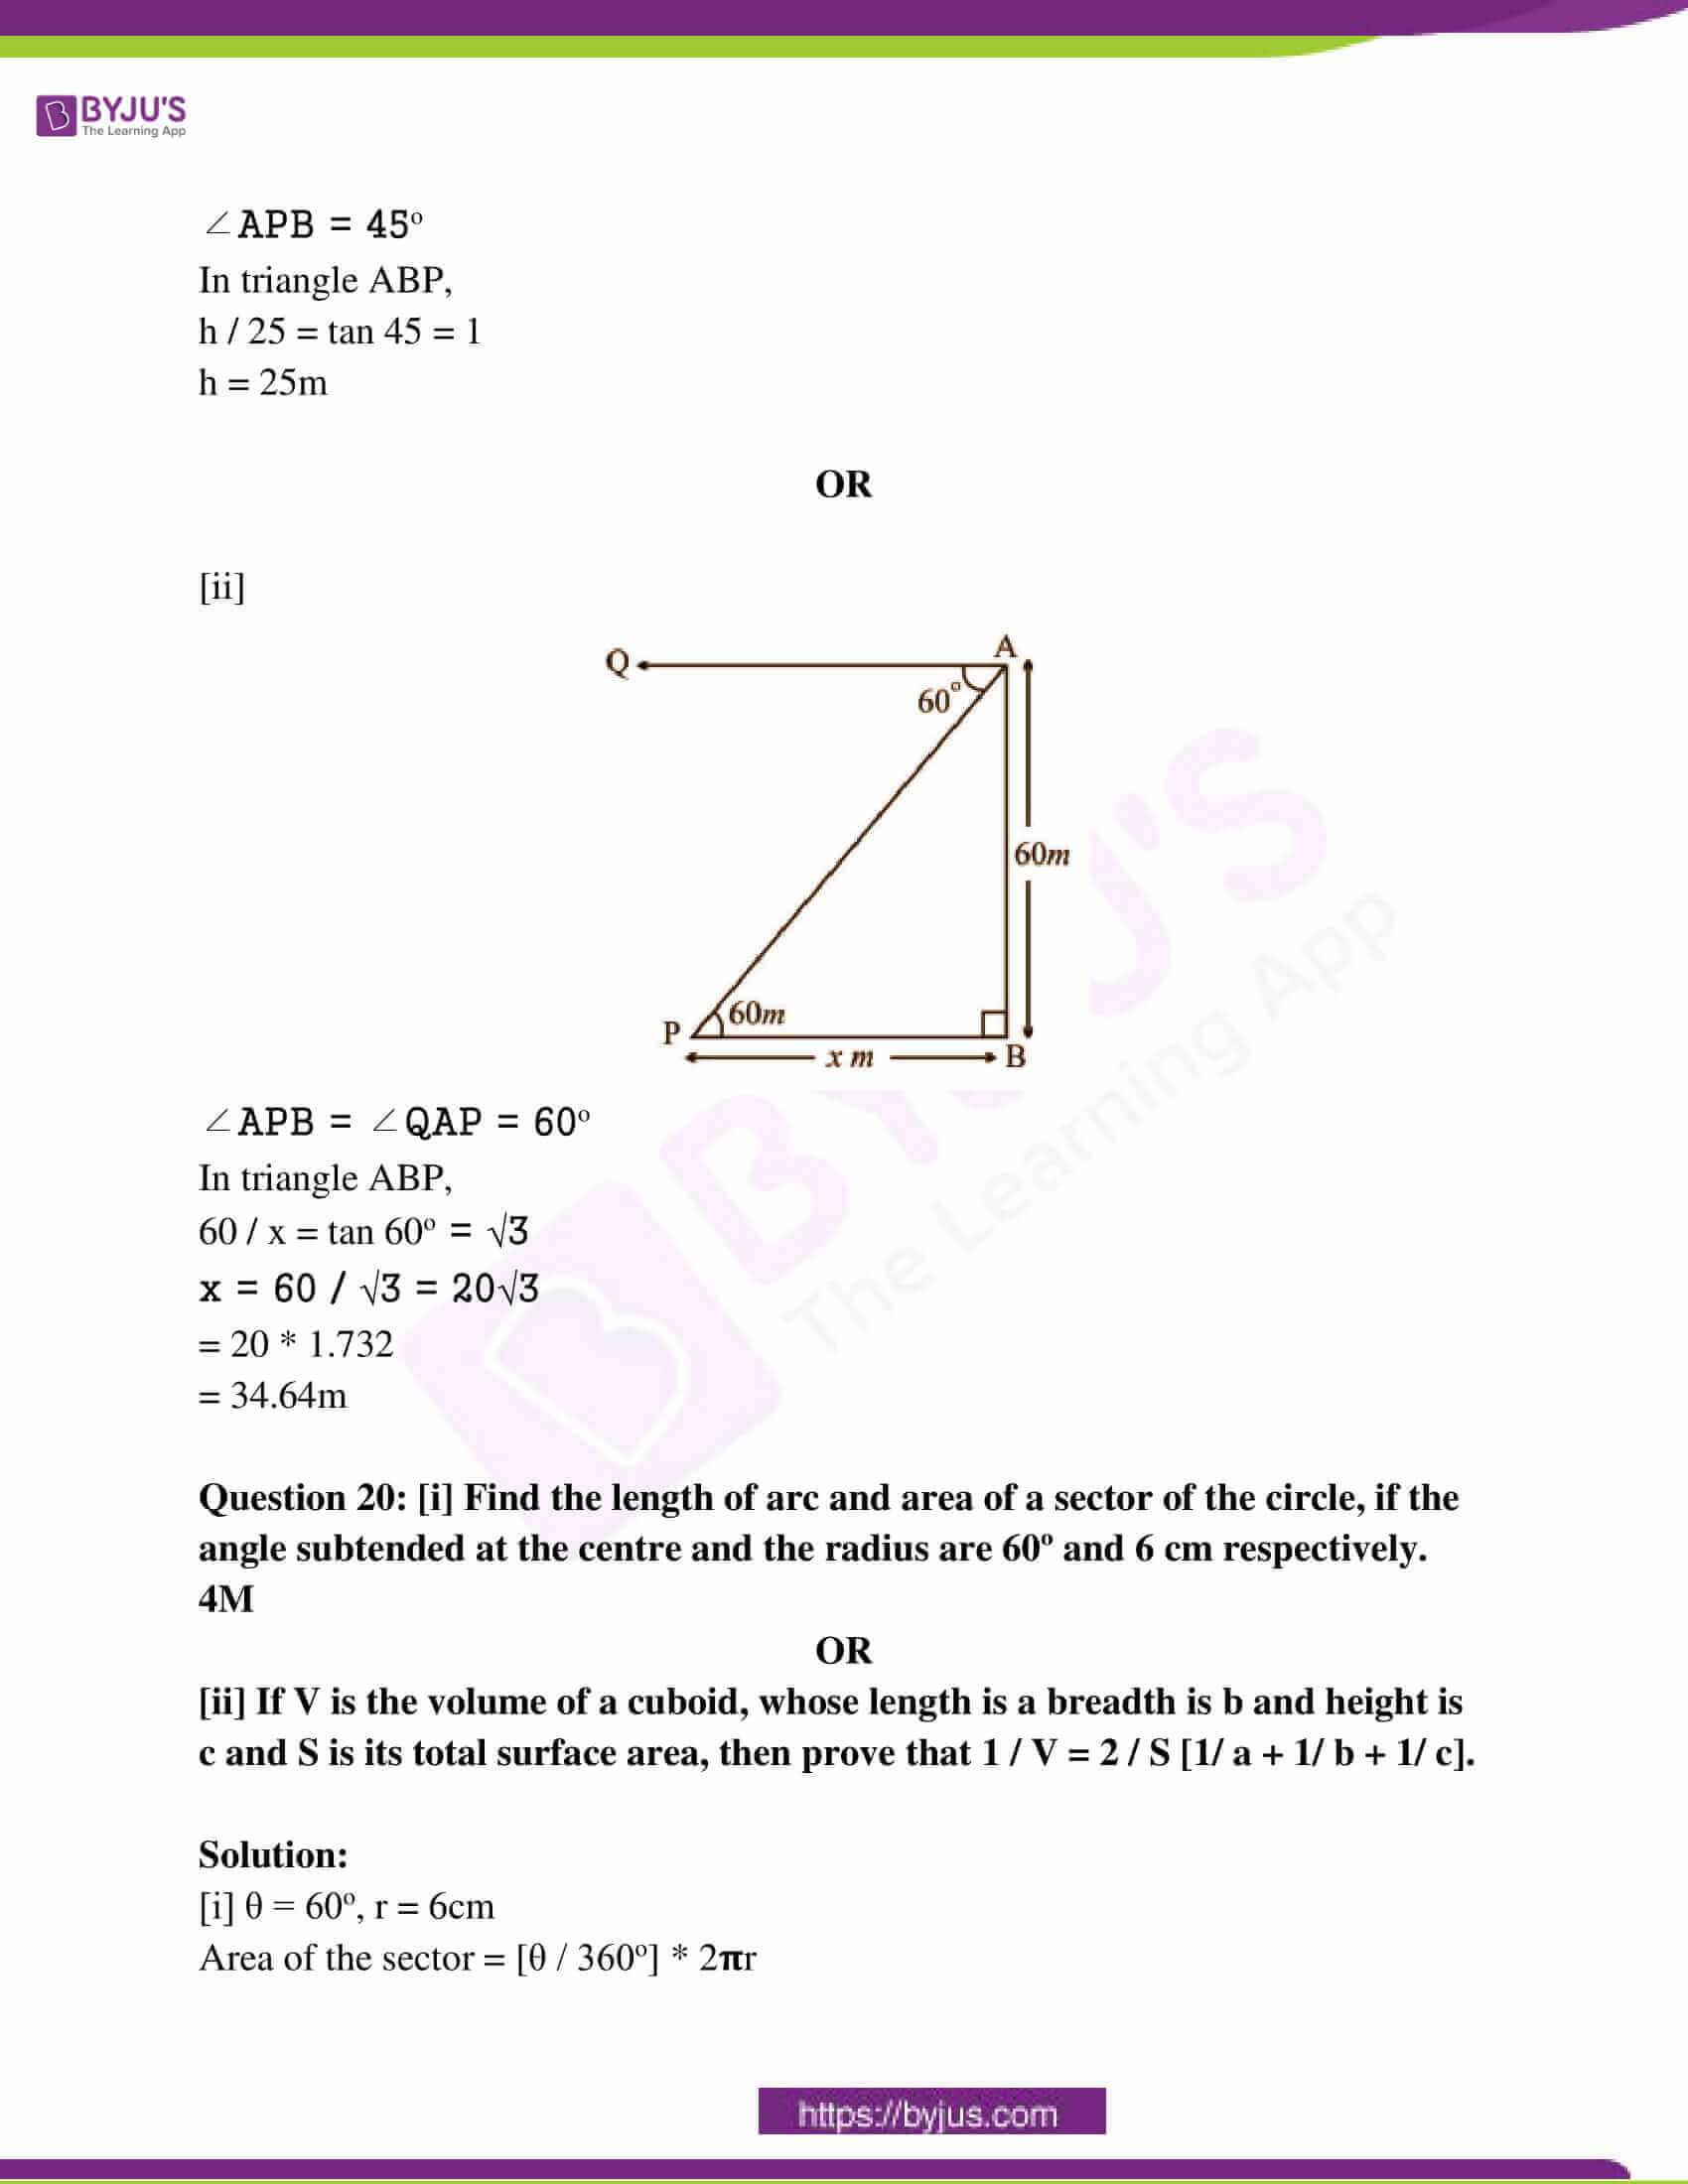 mp class 10 exam question paper with solutions march 2018 17